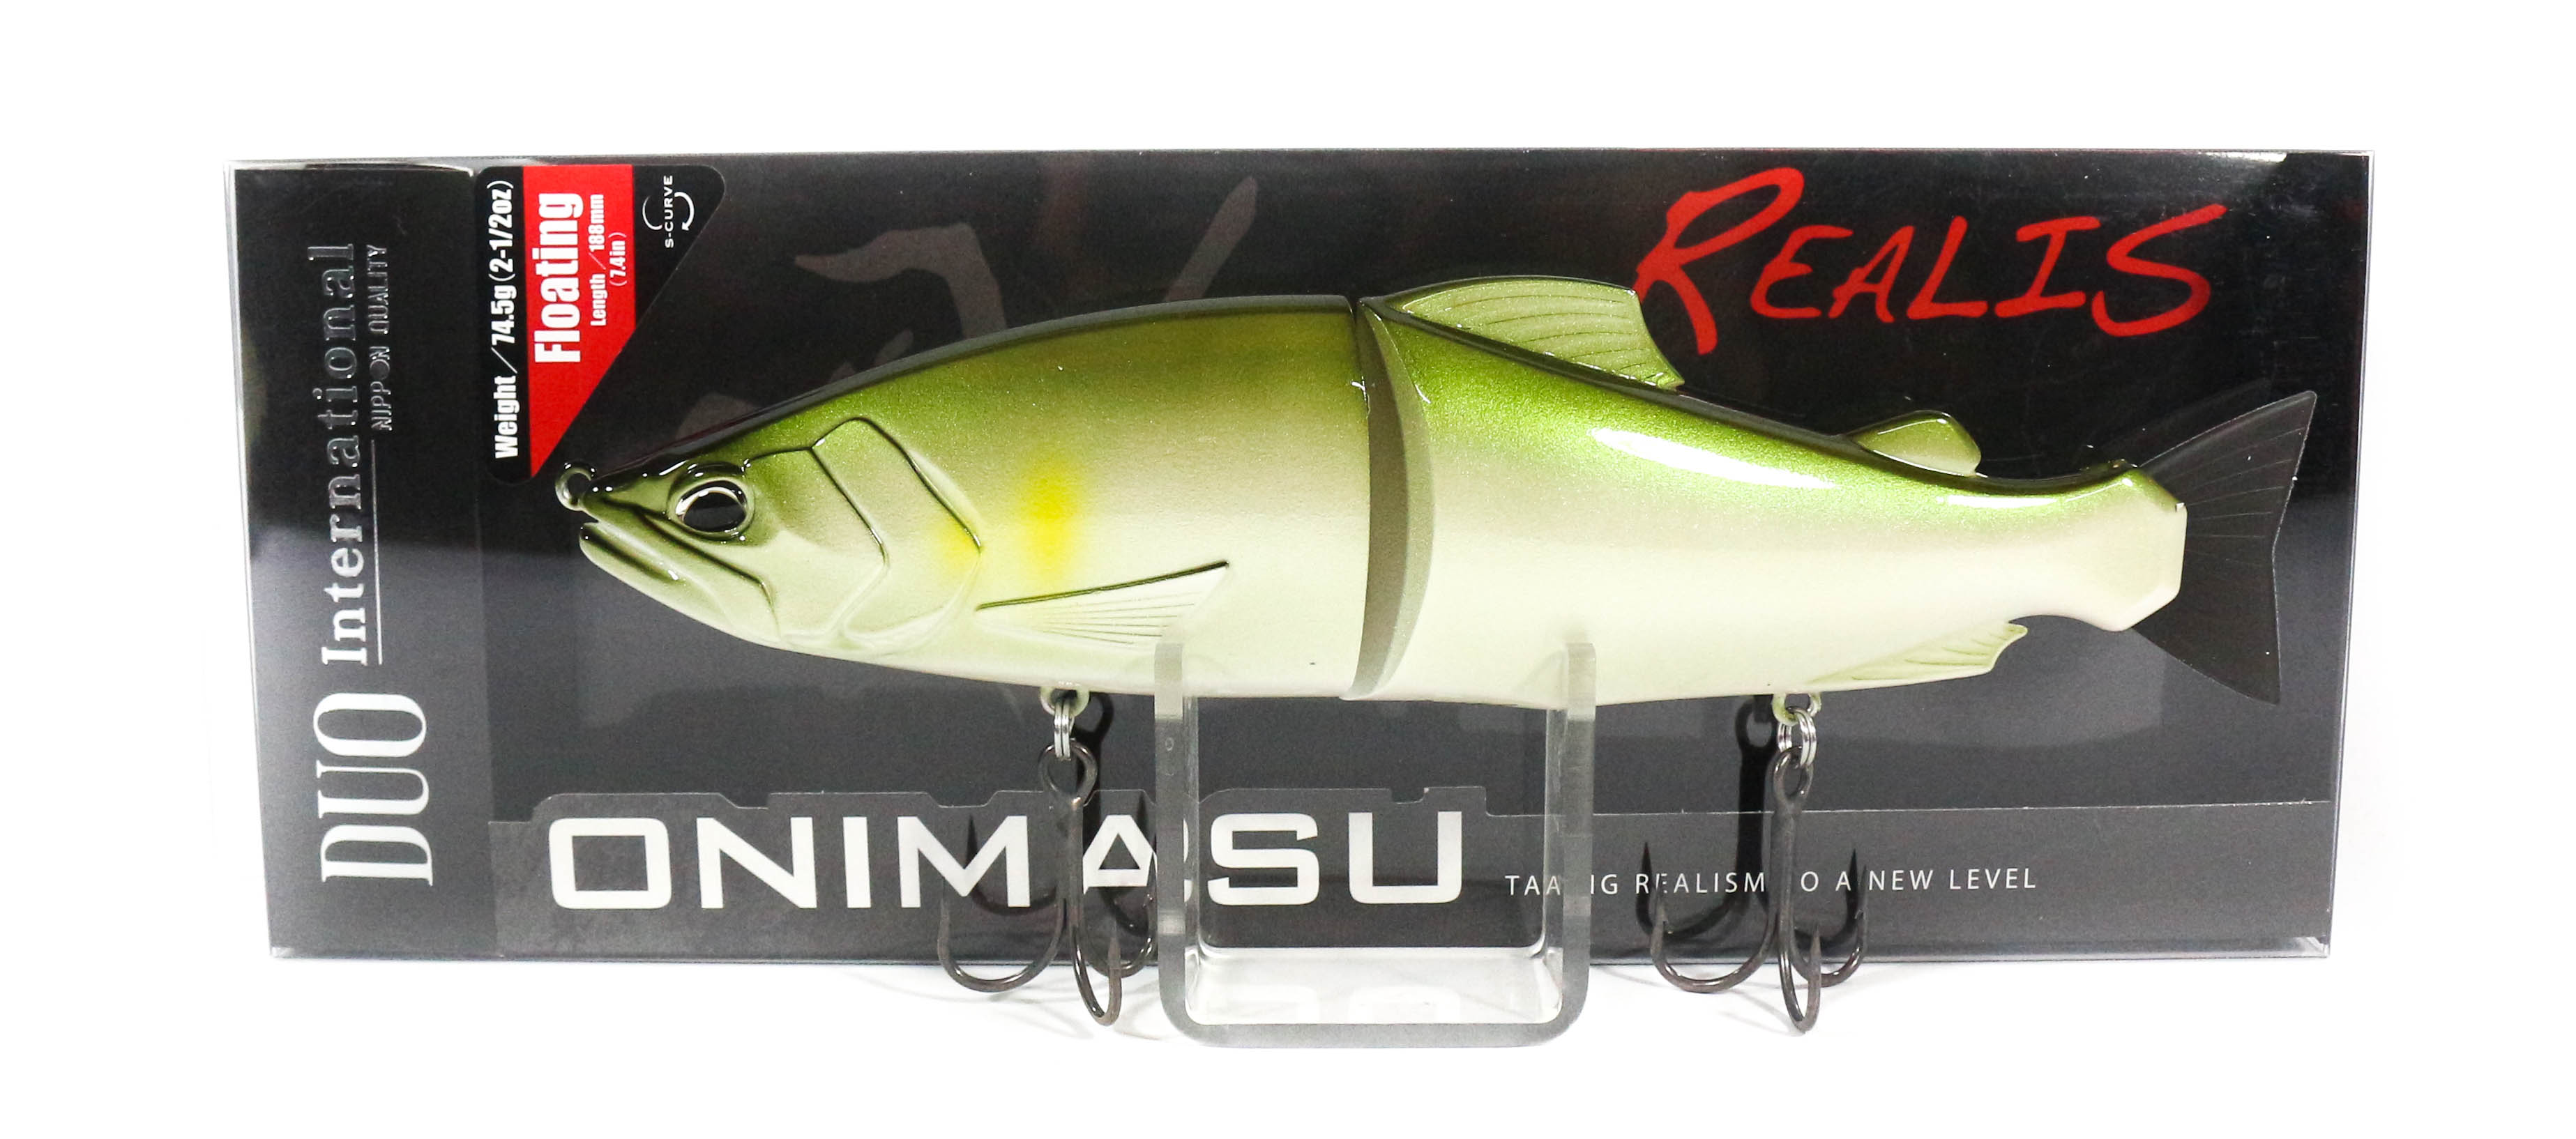 Duo Realis Onimasu 188F Swimbait Jointed Floating Lure ACC4010 (3069)